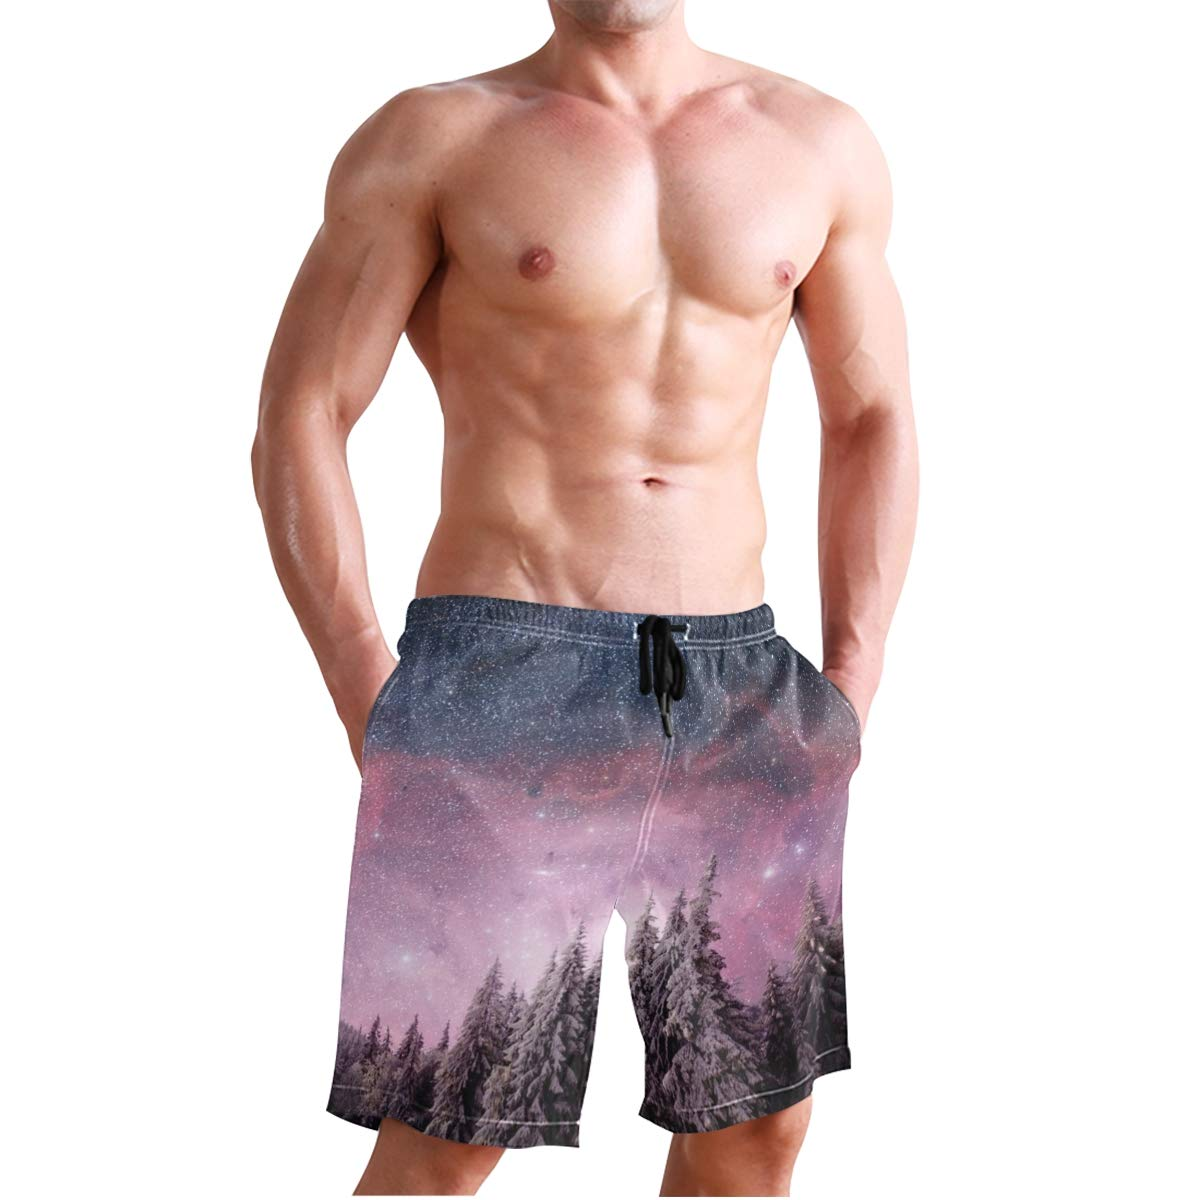 Aluys boutique Mens Swim Trunks Quick Dry Magical Winter Landscape Printed Holiday Beach Board Shorts with Mesh Lining